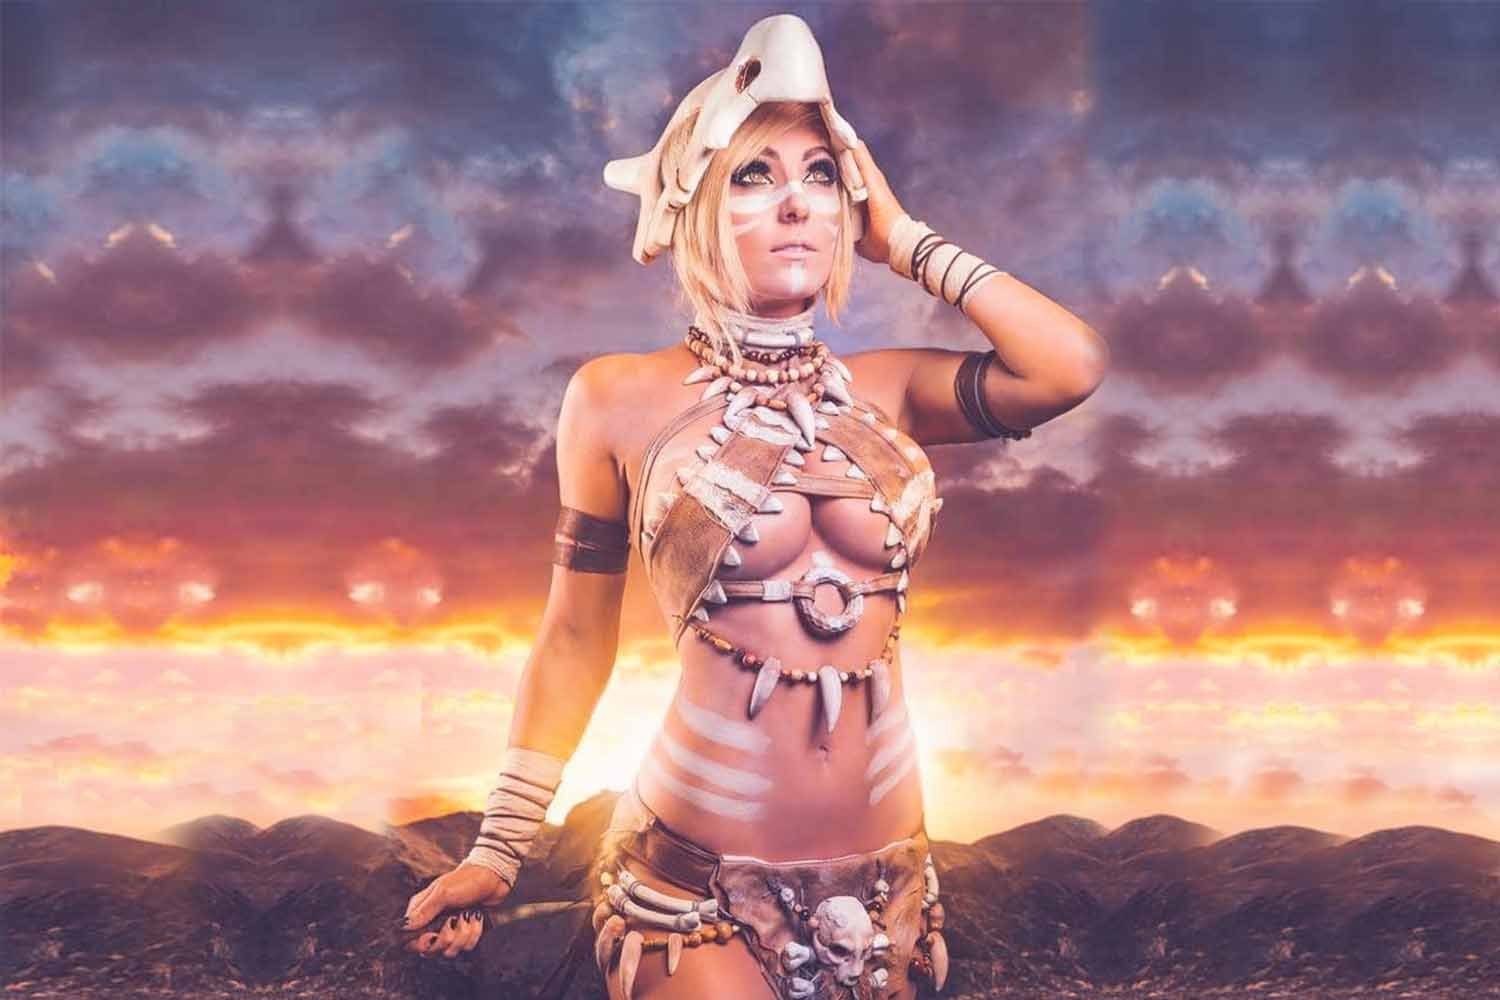 Jessica Nigri is My Queen, Her Cosplay is Simply The Best